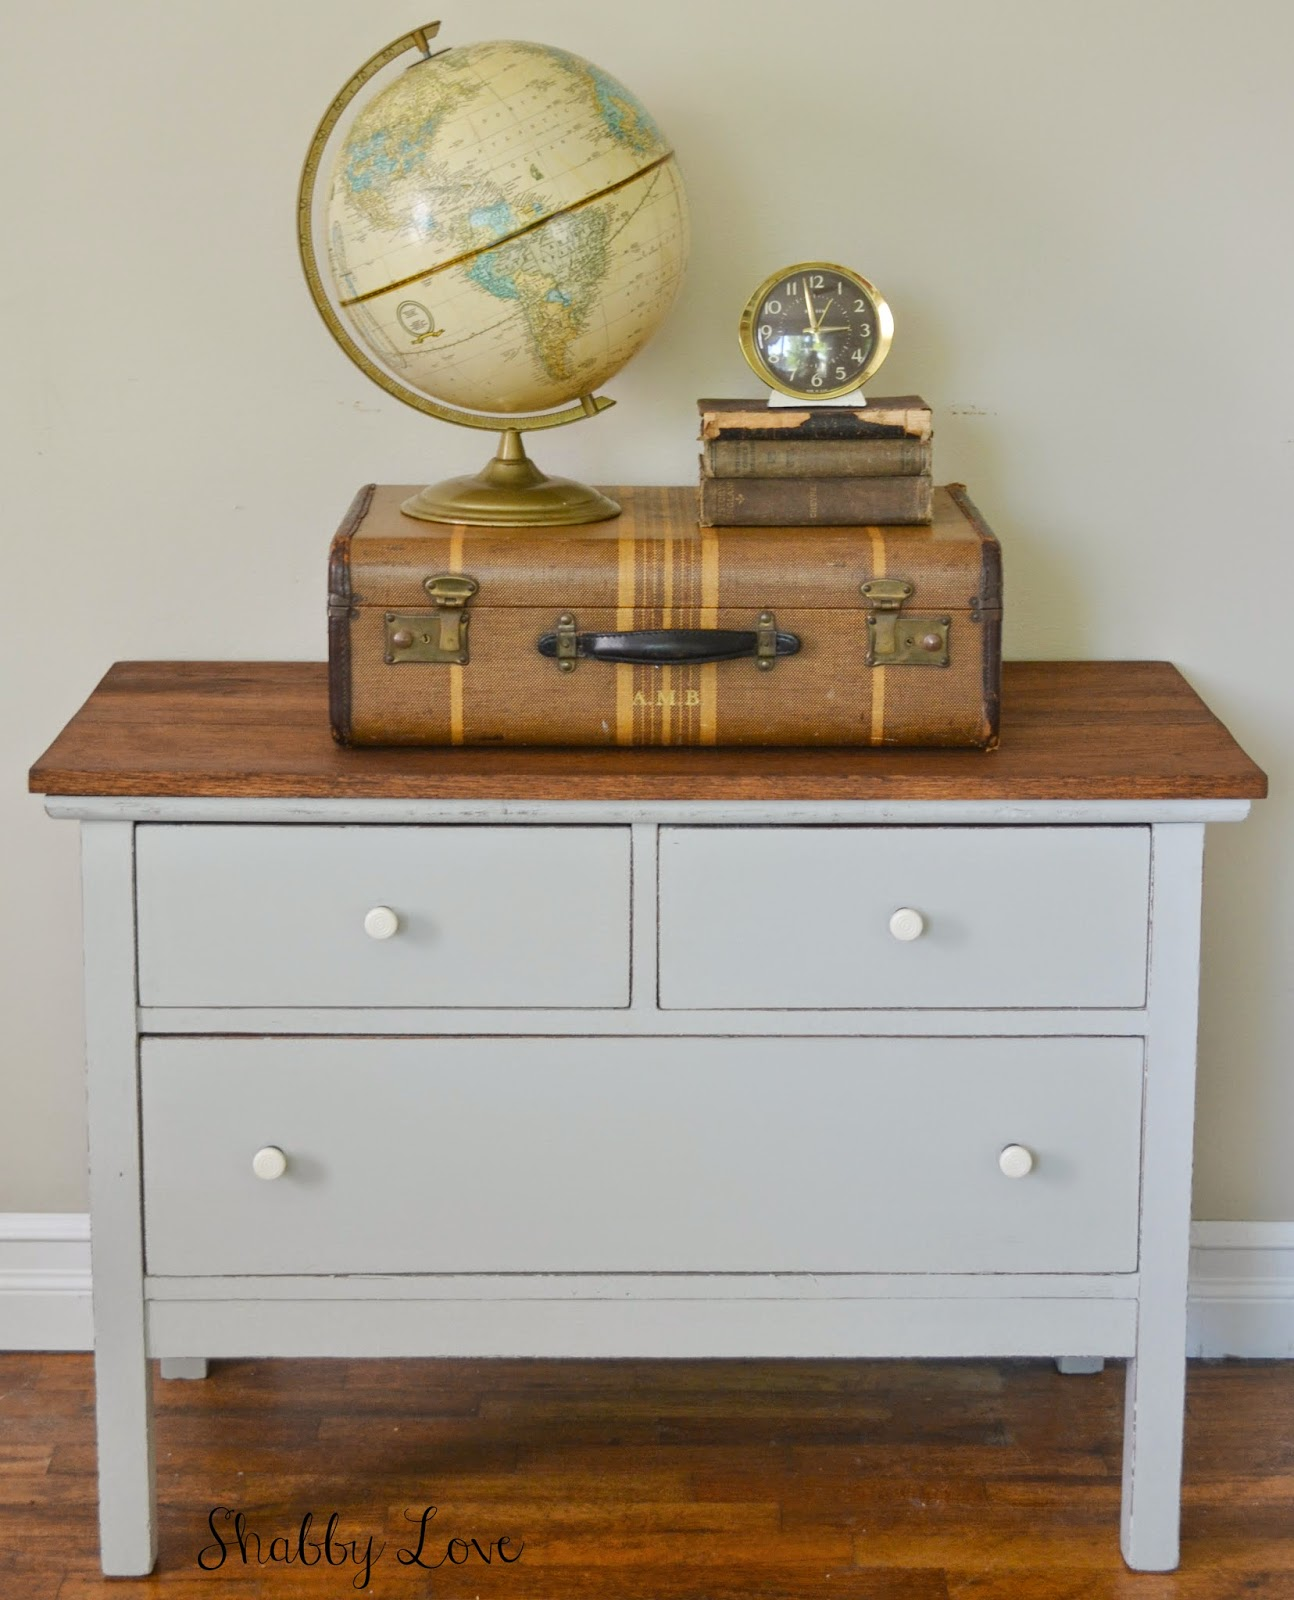 Furniture Atore: Shabby Love: The Best Thrift Store Furniture Find Ever